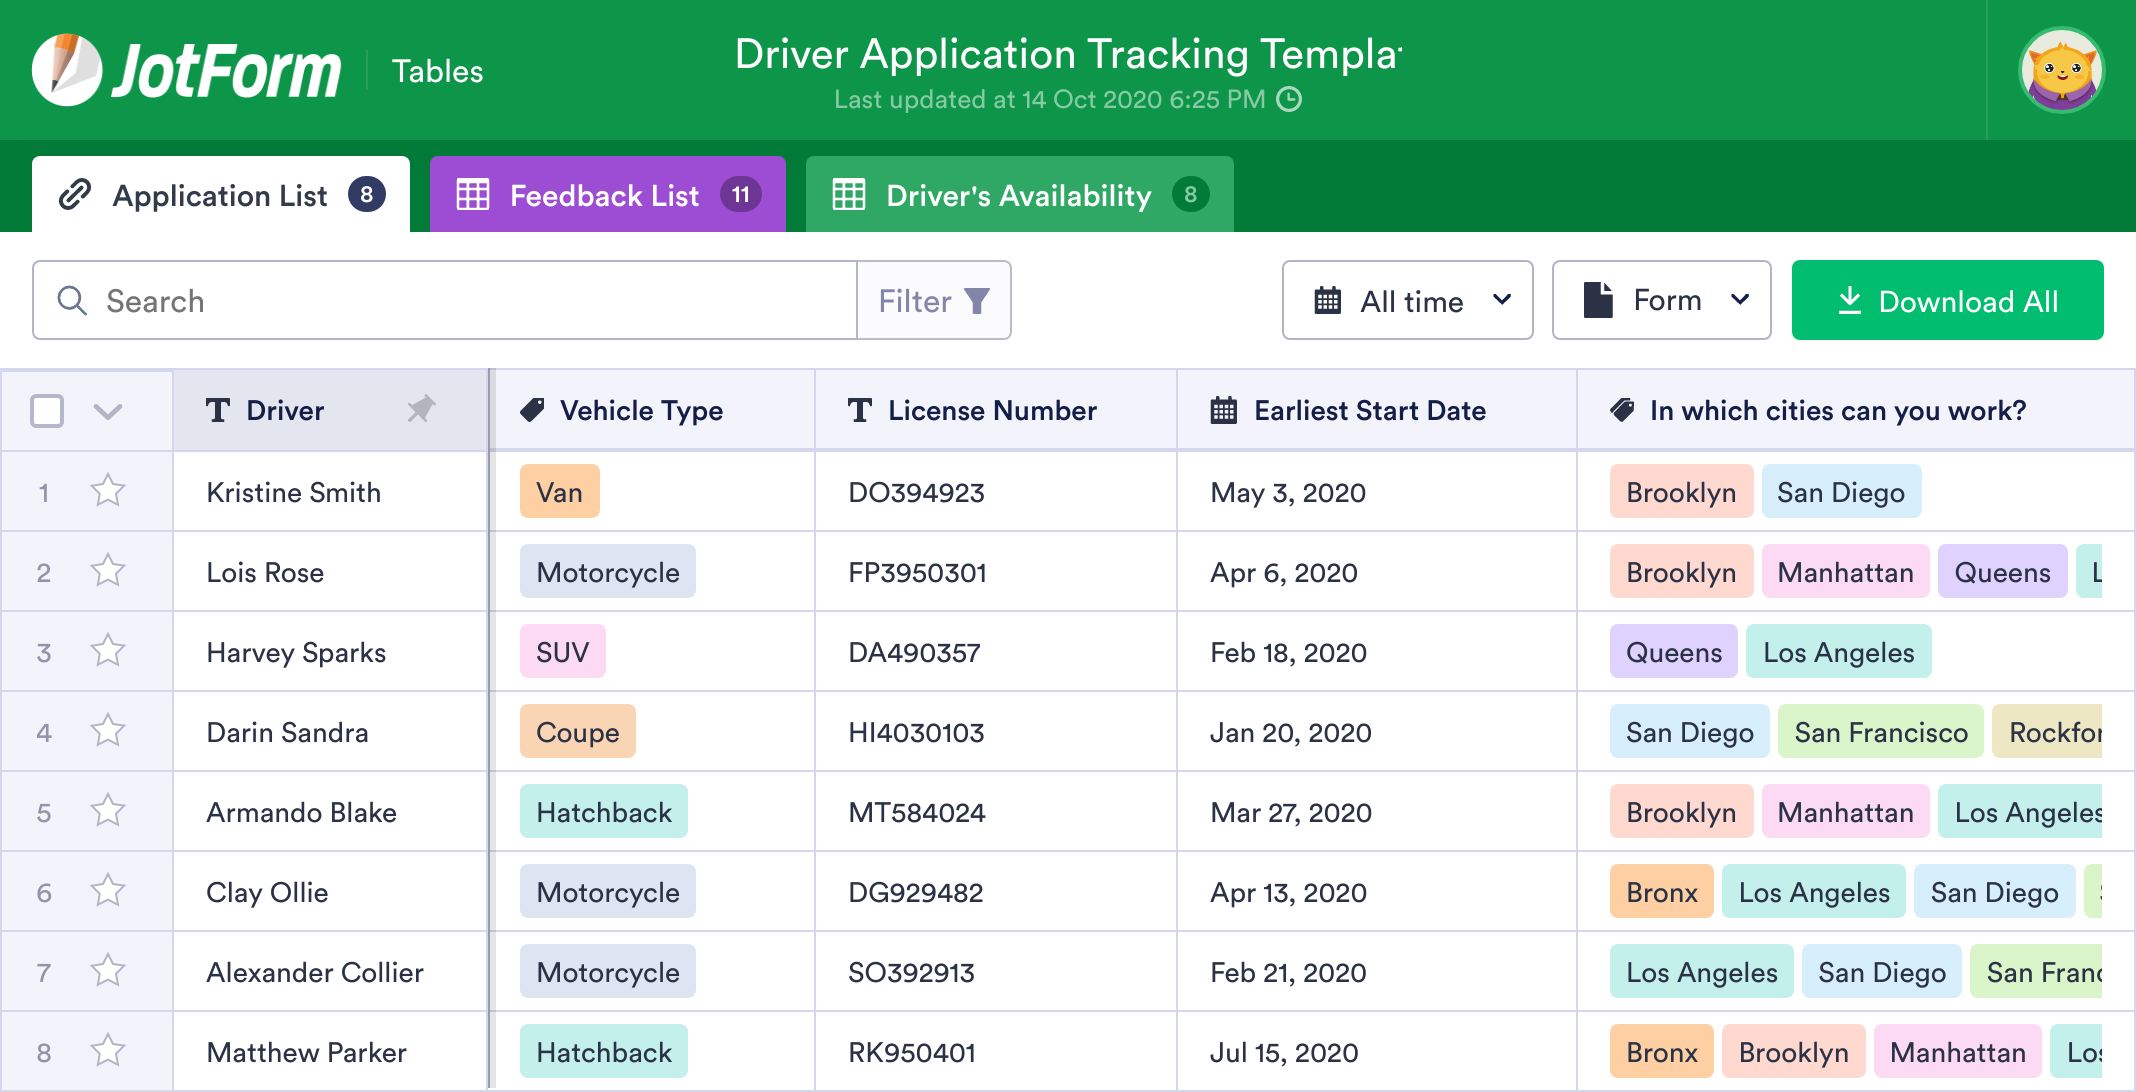 Driver Application Tracking Template